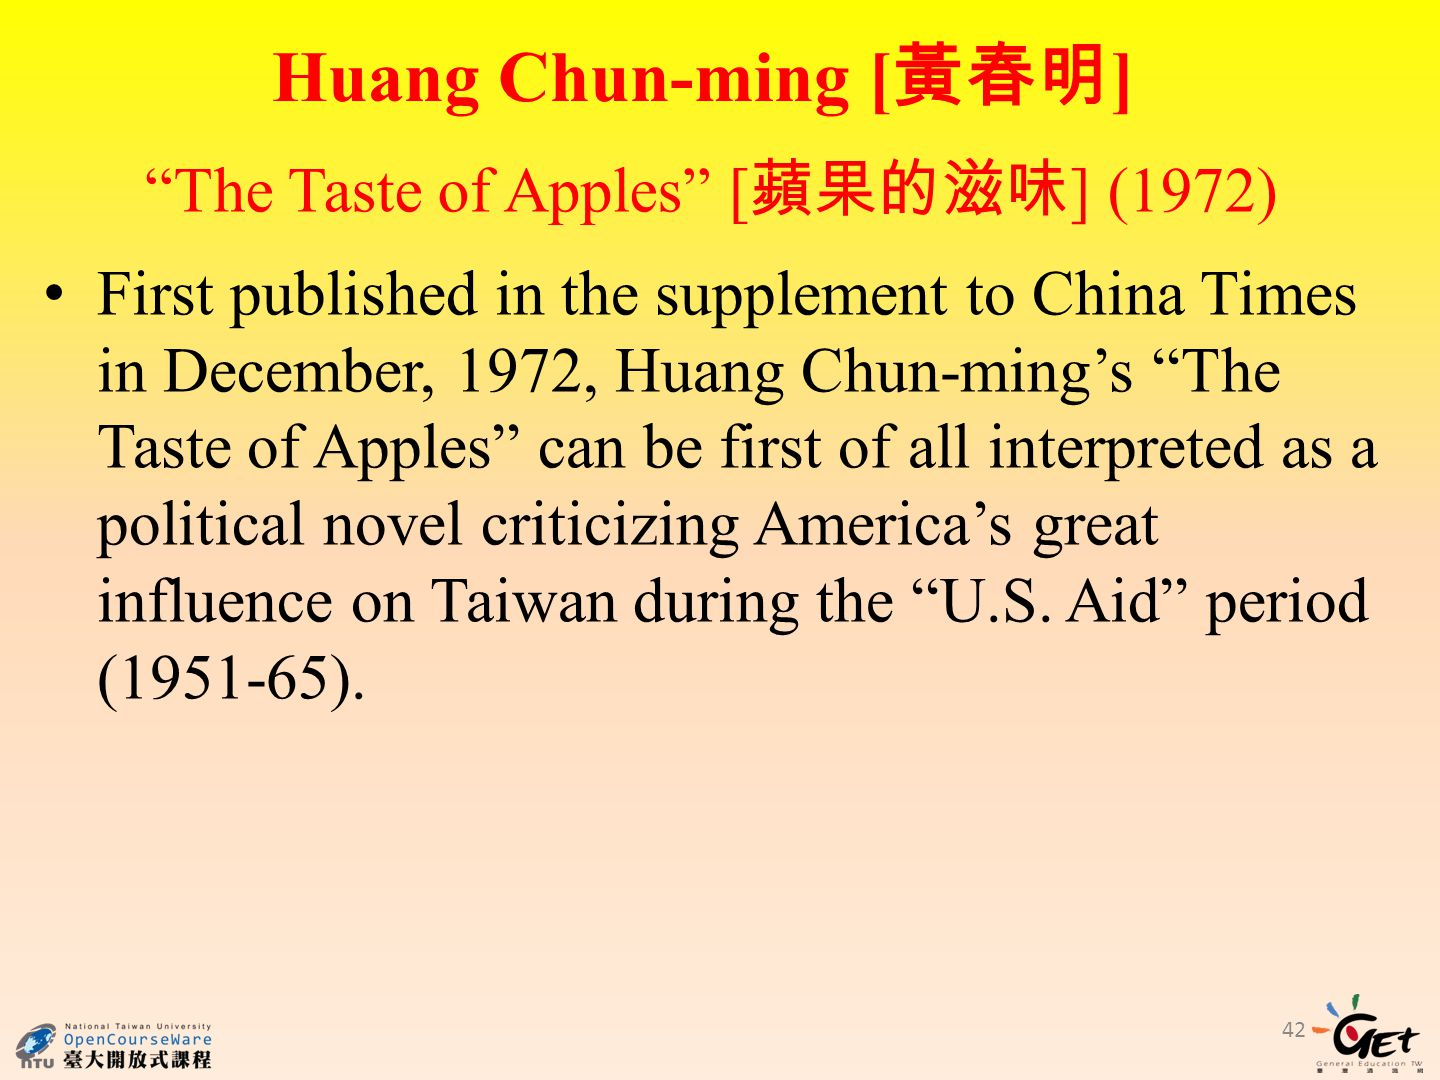 First published in the supplement to China Times in December, 1972, Huang Chun-mings The Taste of Apples can be first of all interpreted as a political novel criticizing Americas great influence on Taiwan during the U.S.